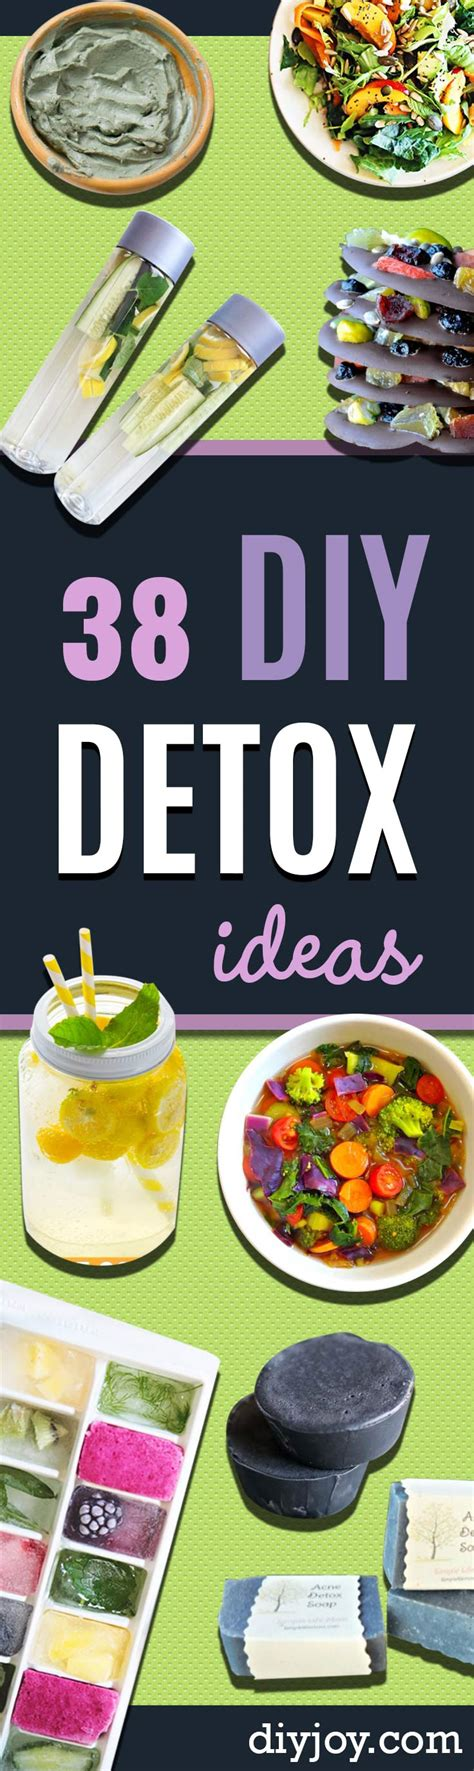 Detox Mask Make You Out At Firstr by 38 Diy Detox Ideas